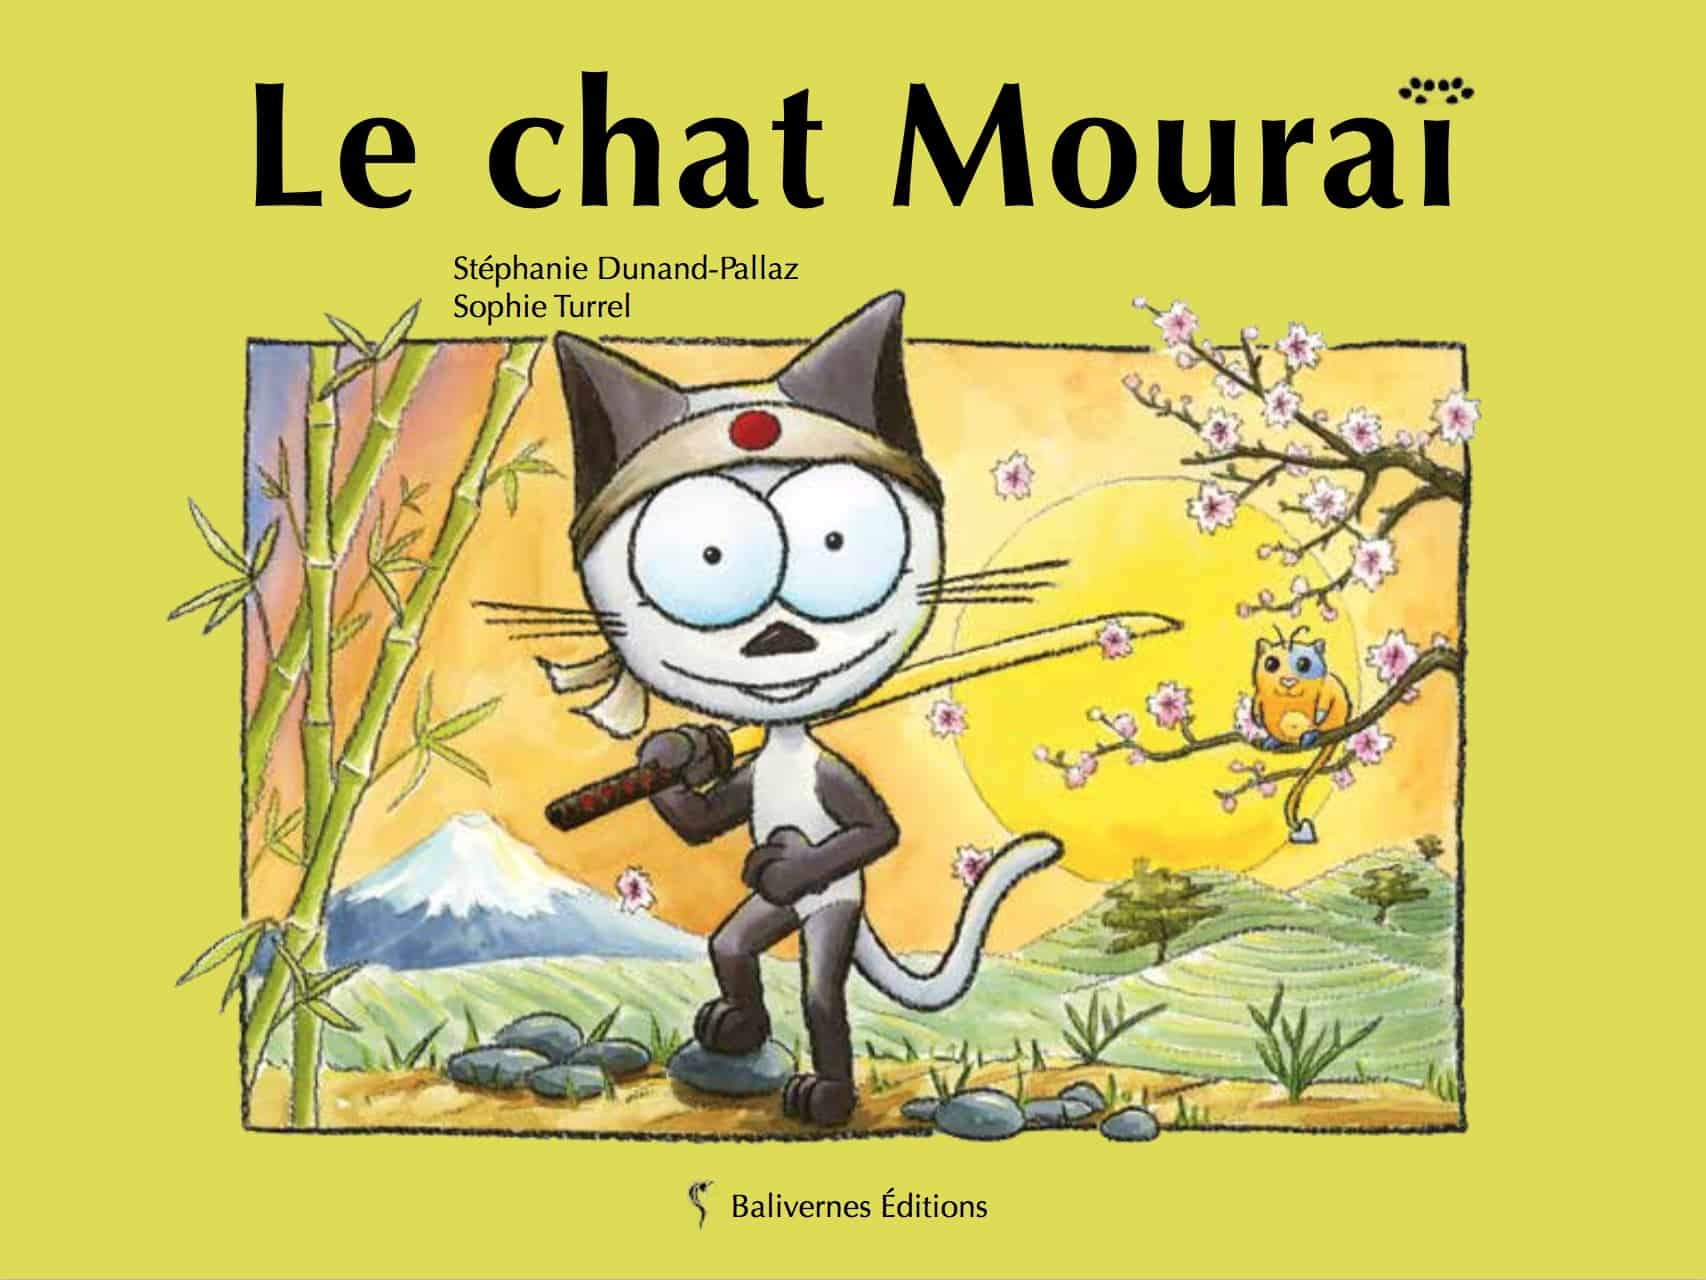 Le Chat Mouraï, album de la collection Les Petits Chats